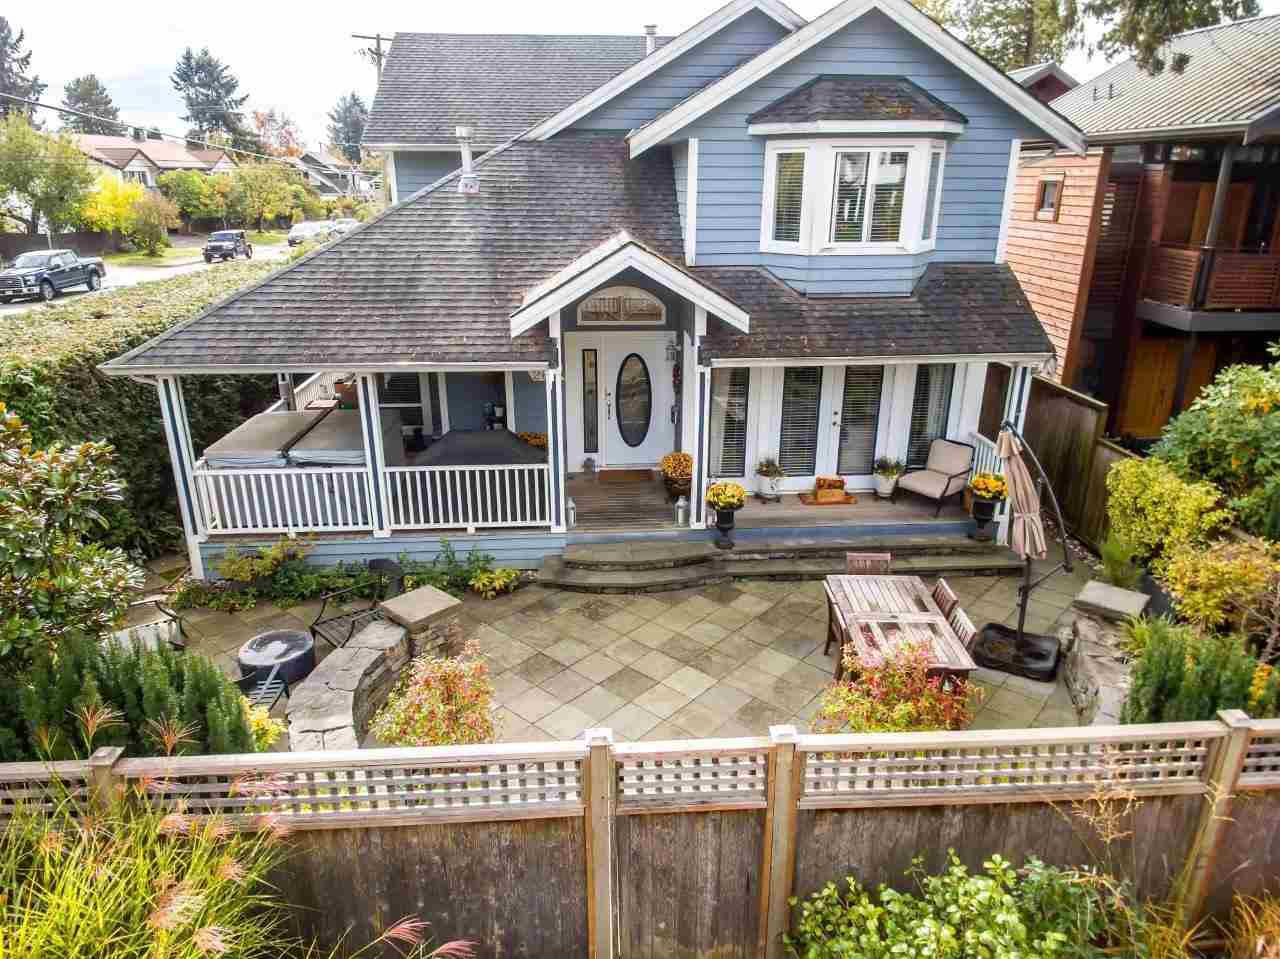 Main Photo: 267 E 19TH Street in North Vancouver: Central Lonsdale House 1/2 Duplex for sale : MLS®# R2114856